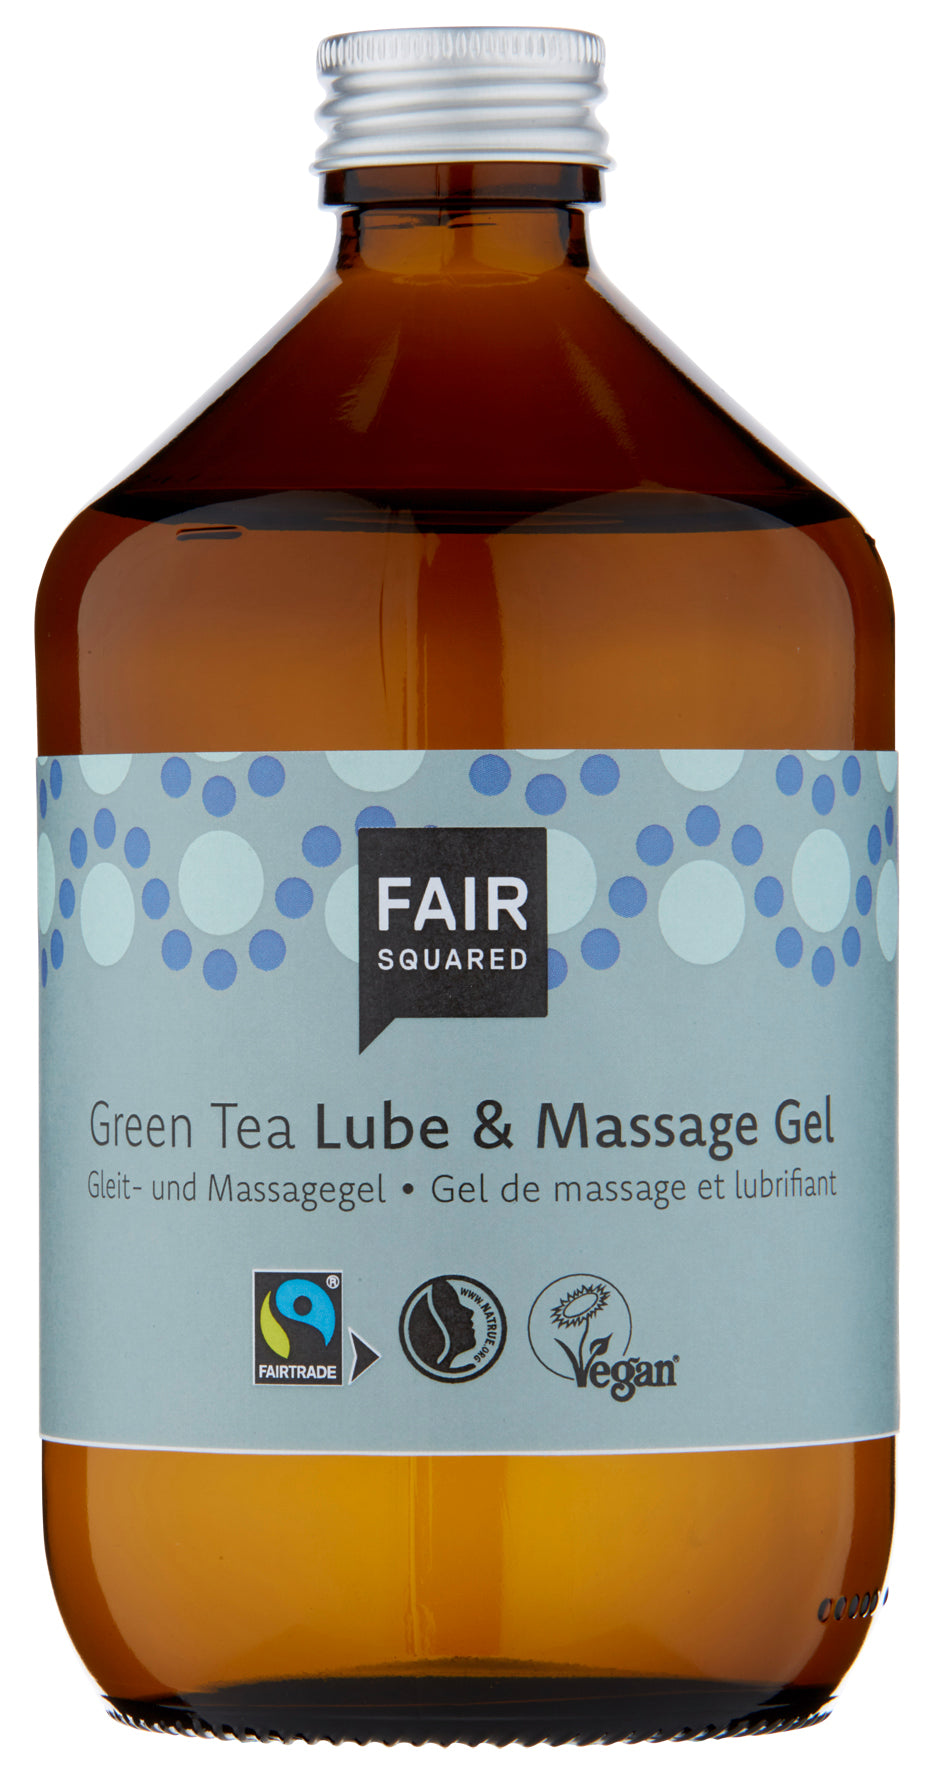 Fair Squared, intimlube & massage gel green tea, 500ml plastfrie